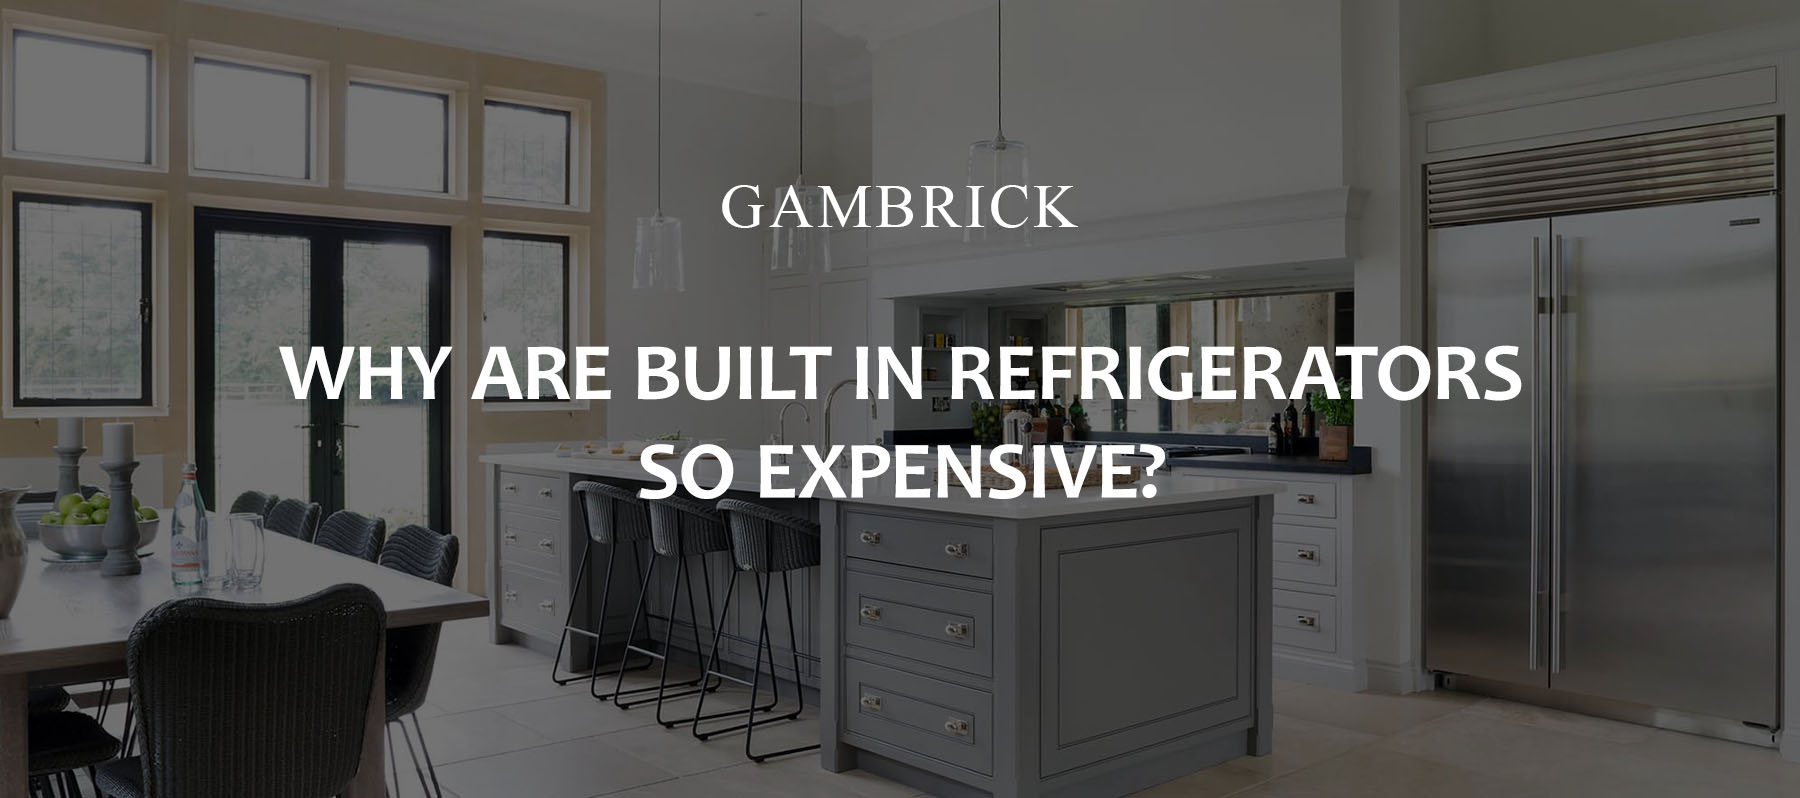 why are built in refrigerators so expensive banner pic | Gambrick